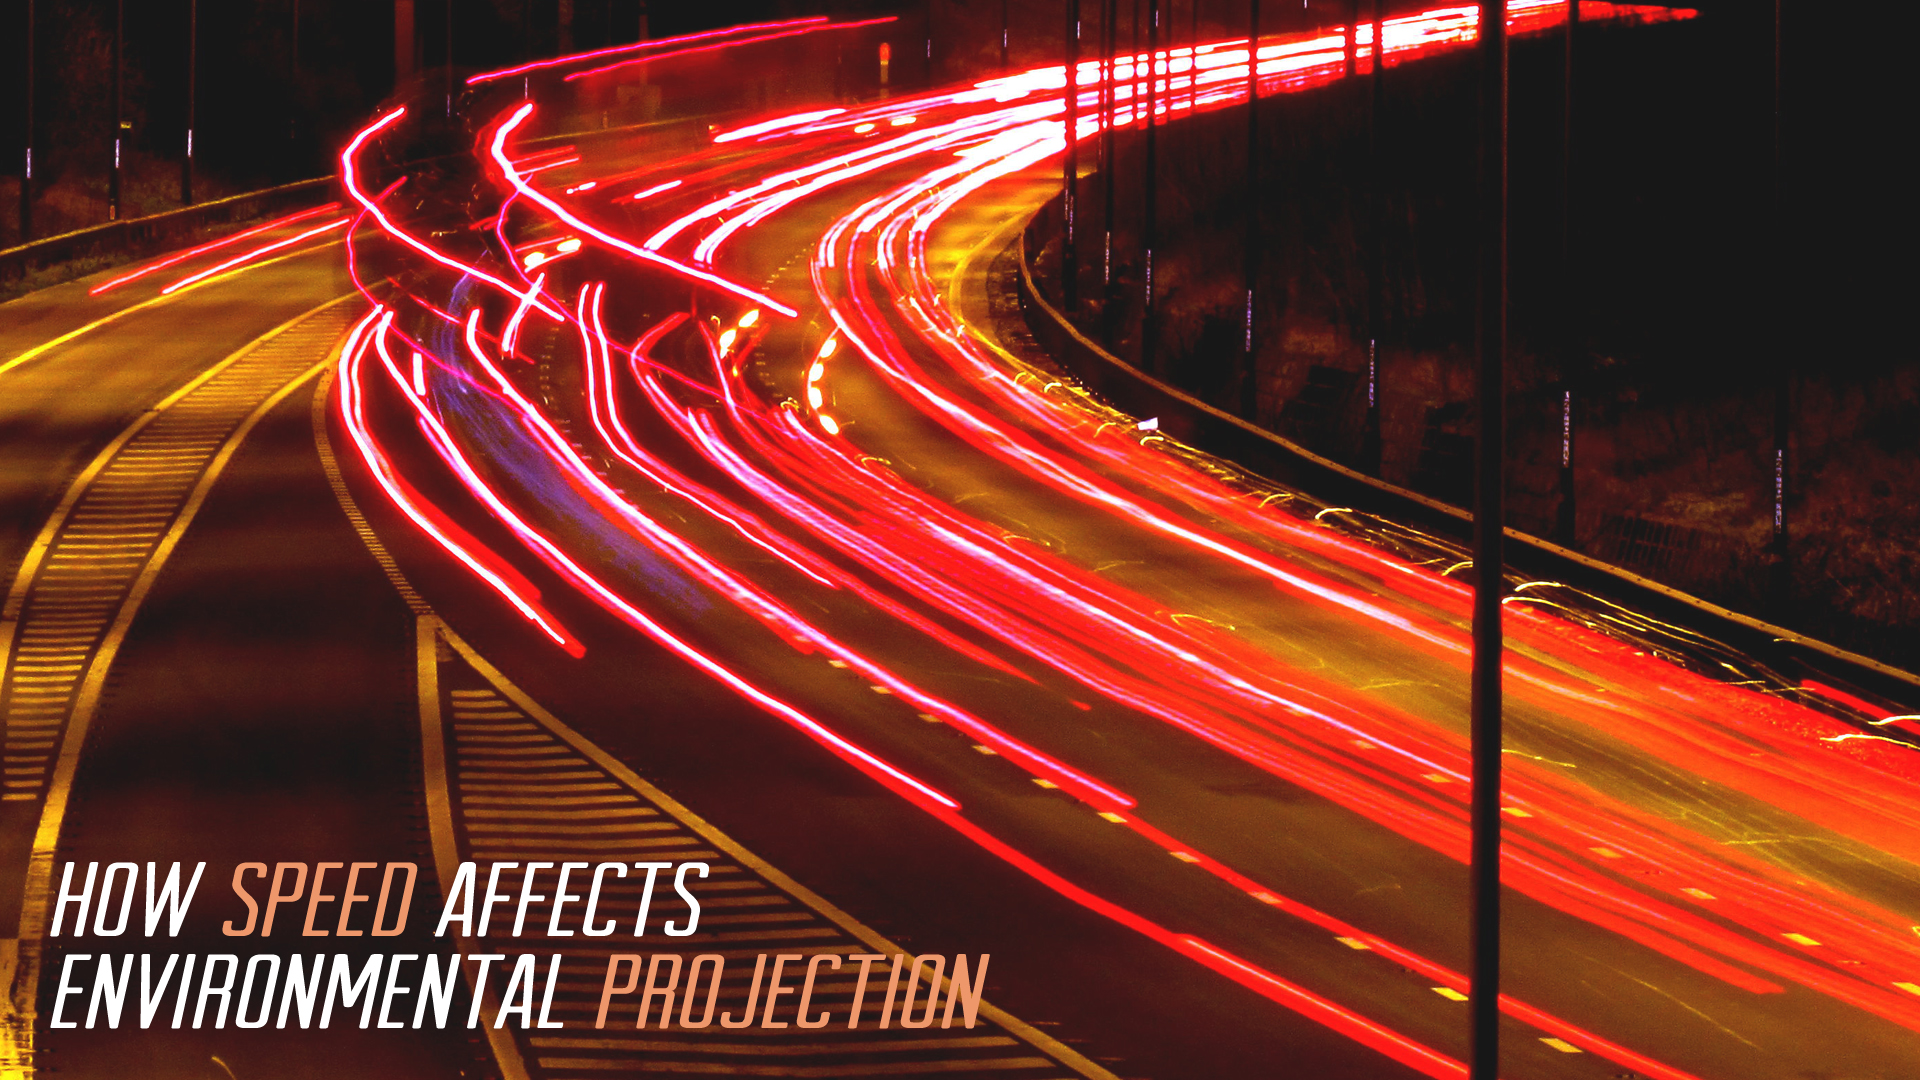 Speed of Your Motions and Environmental Projection | TripleWide Media